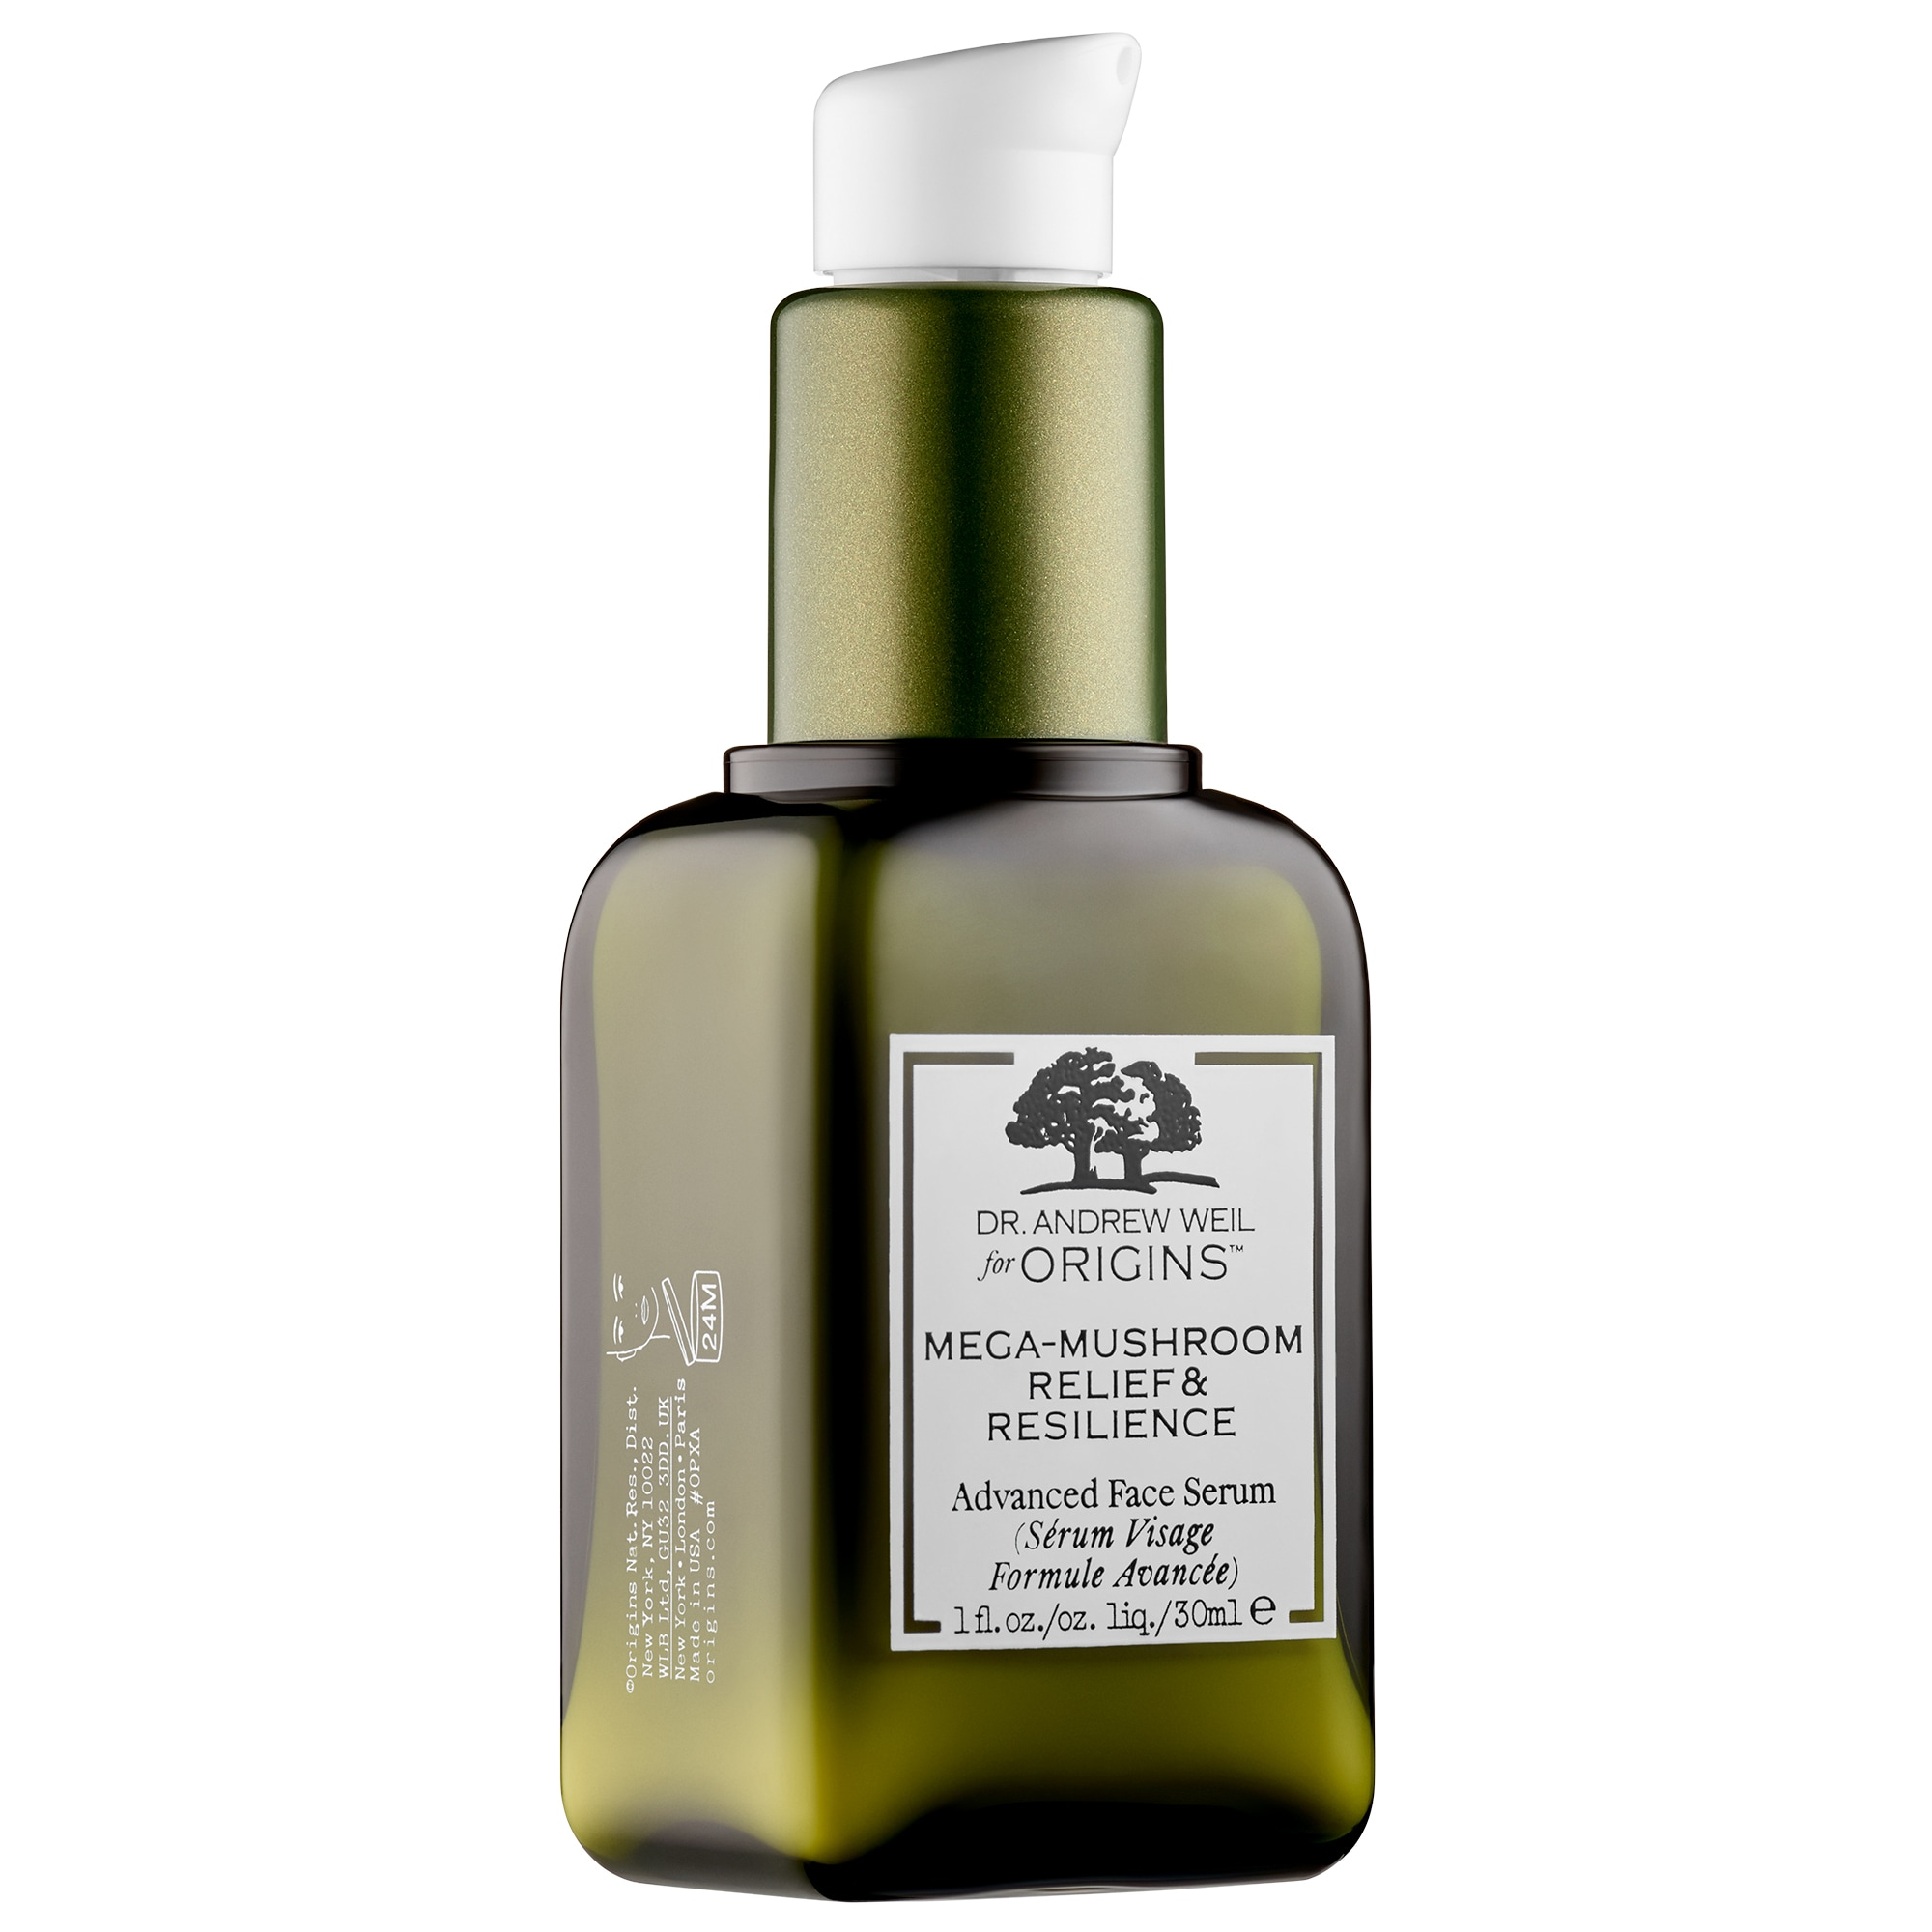 Dr. Andrew Mega-mushroom Skin Relief & Resilience Advanced Face Serum - 3.4oz